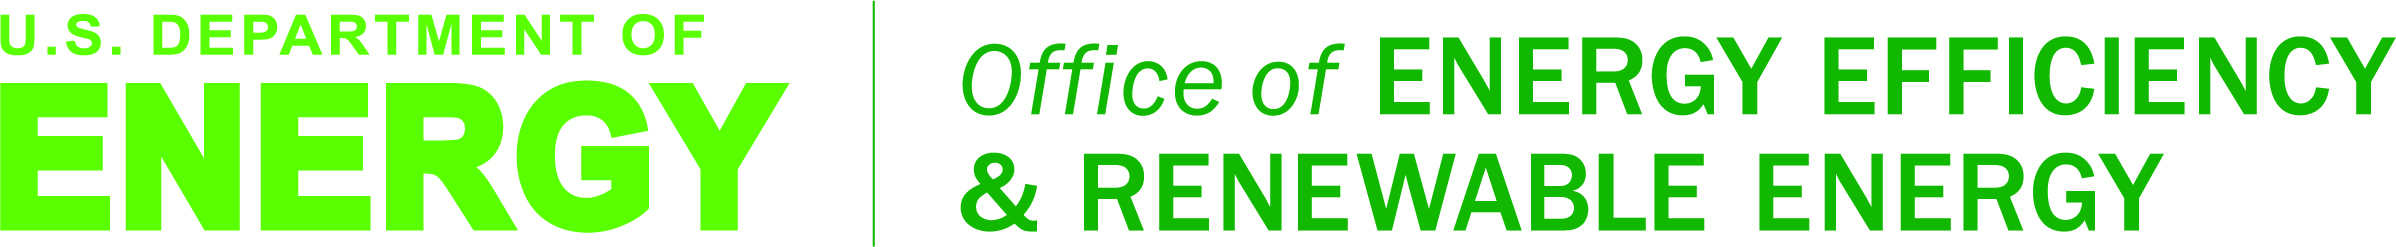 DOE Office of Energy Efficiency & Renewable Energy